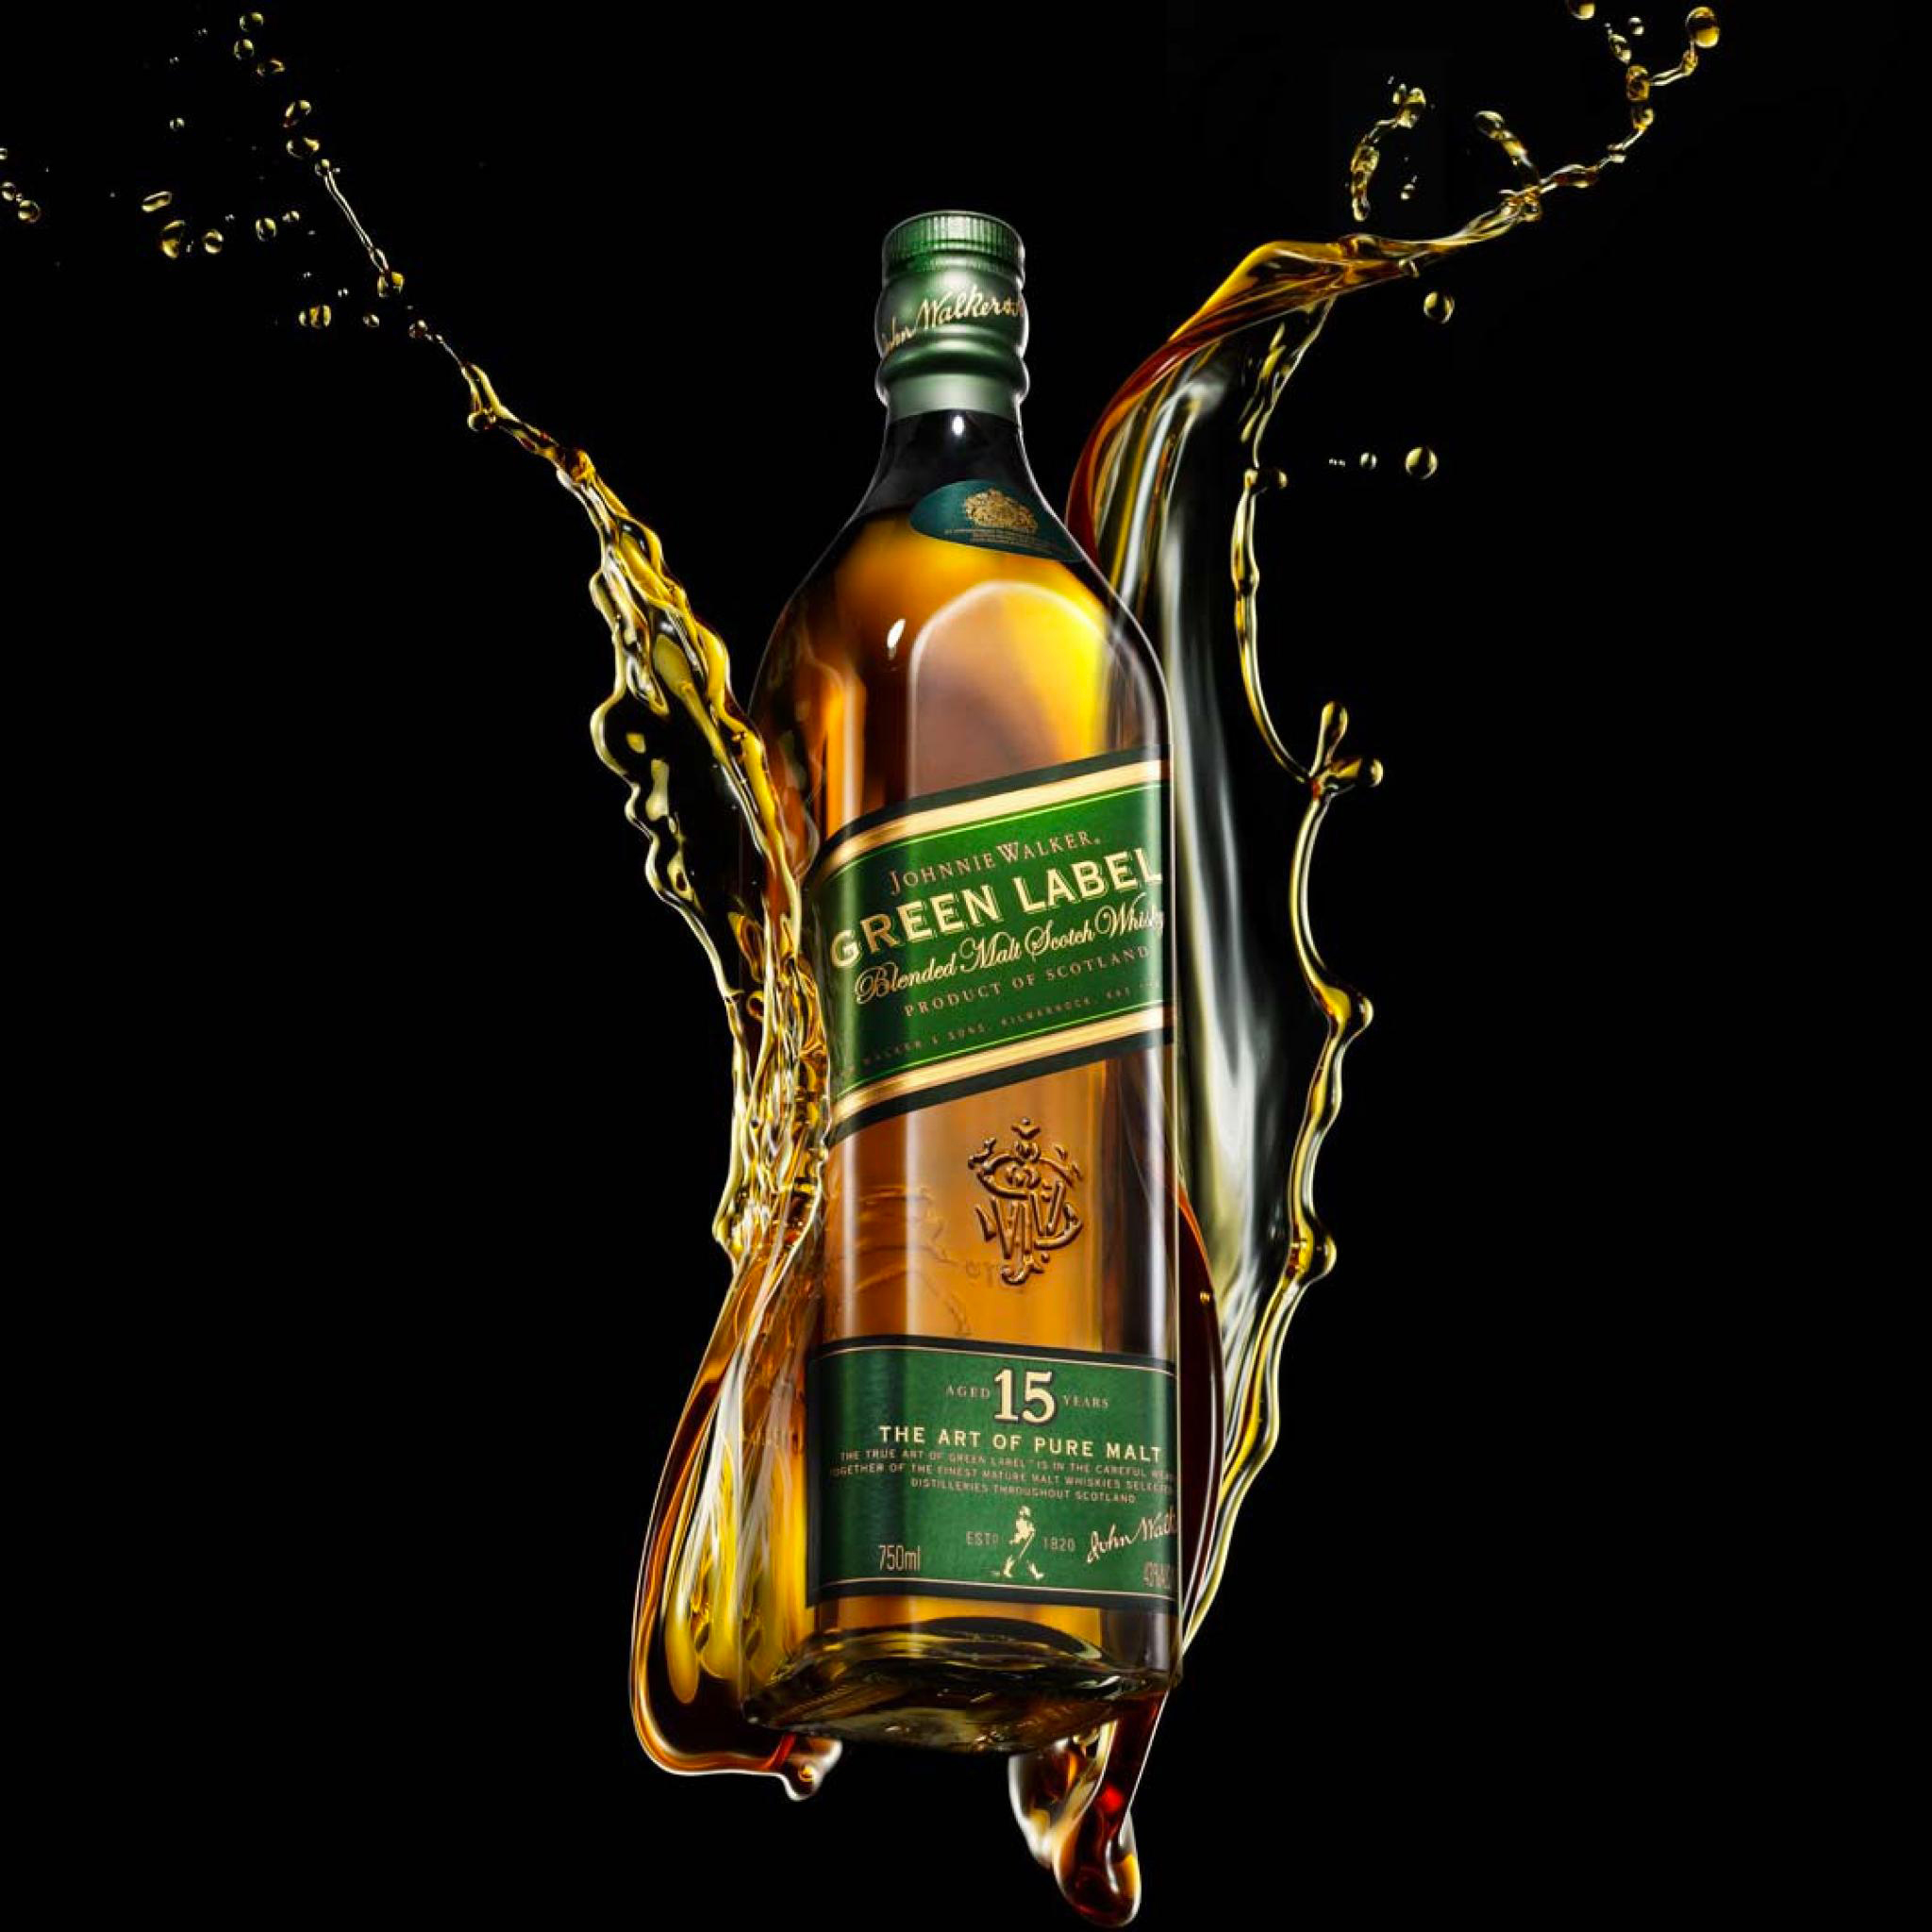 Green Alcohol Drink Johnnie Walker 3Wallpapers iPad Retina Johnnie Walker   iPad Retina